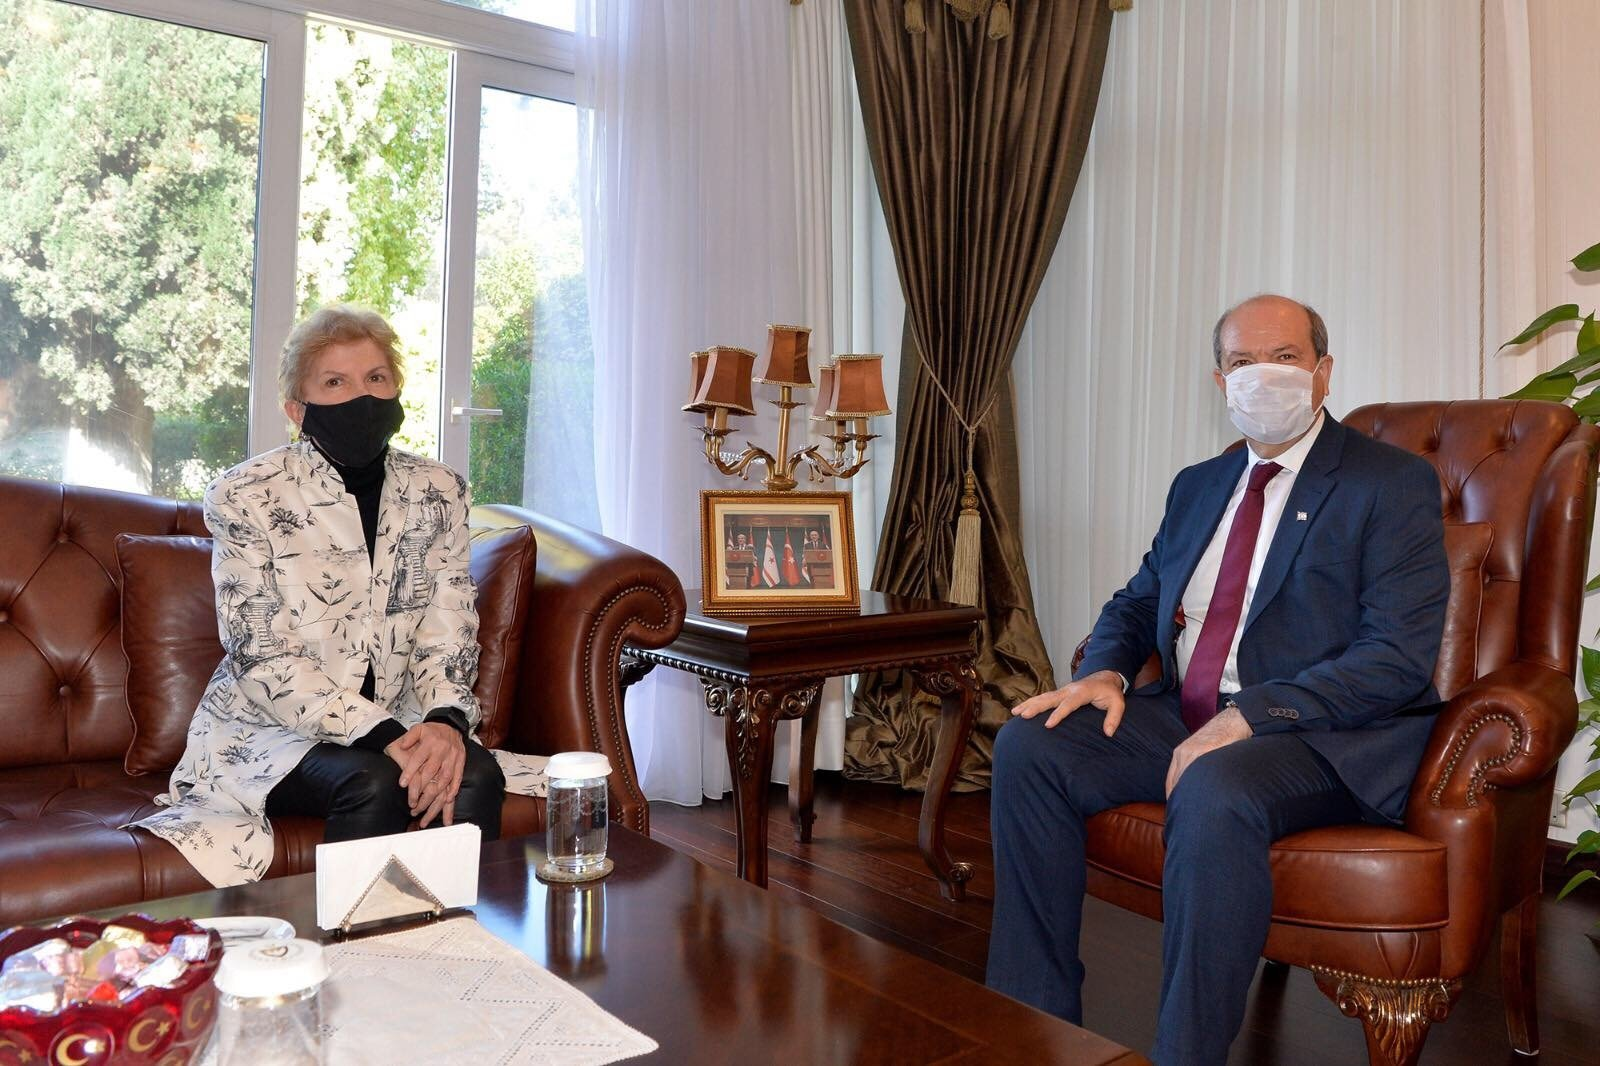 Turkish Republic of Northern Cyprus (TRNC) President Ersin Tatar (R) the meets with United Nations special envoy to Cyprus, Jane Holl Lute, in Lefkoşa, TRNC, Dec. 1, 2020. (AA Photo)